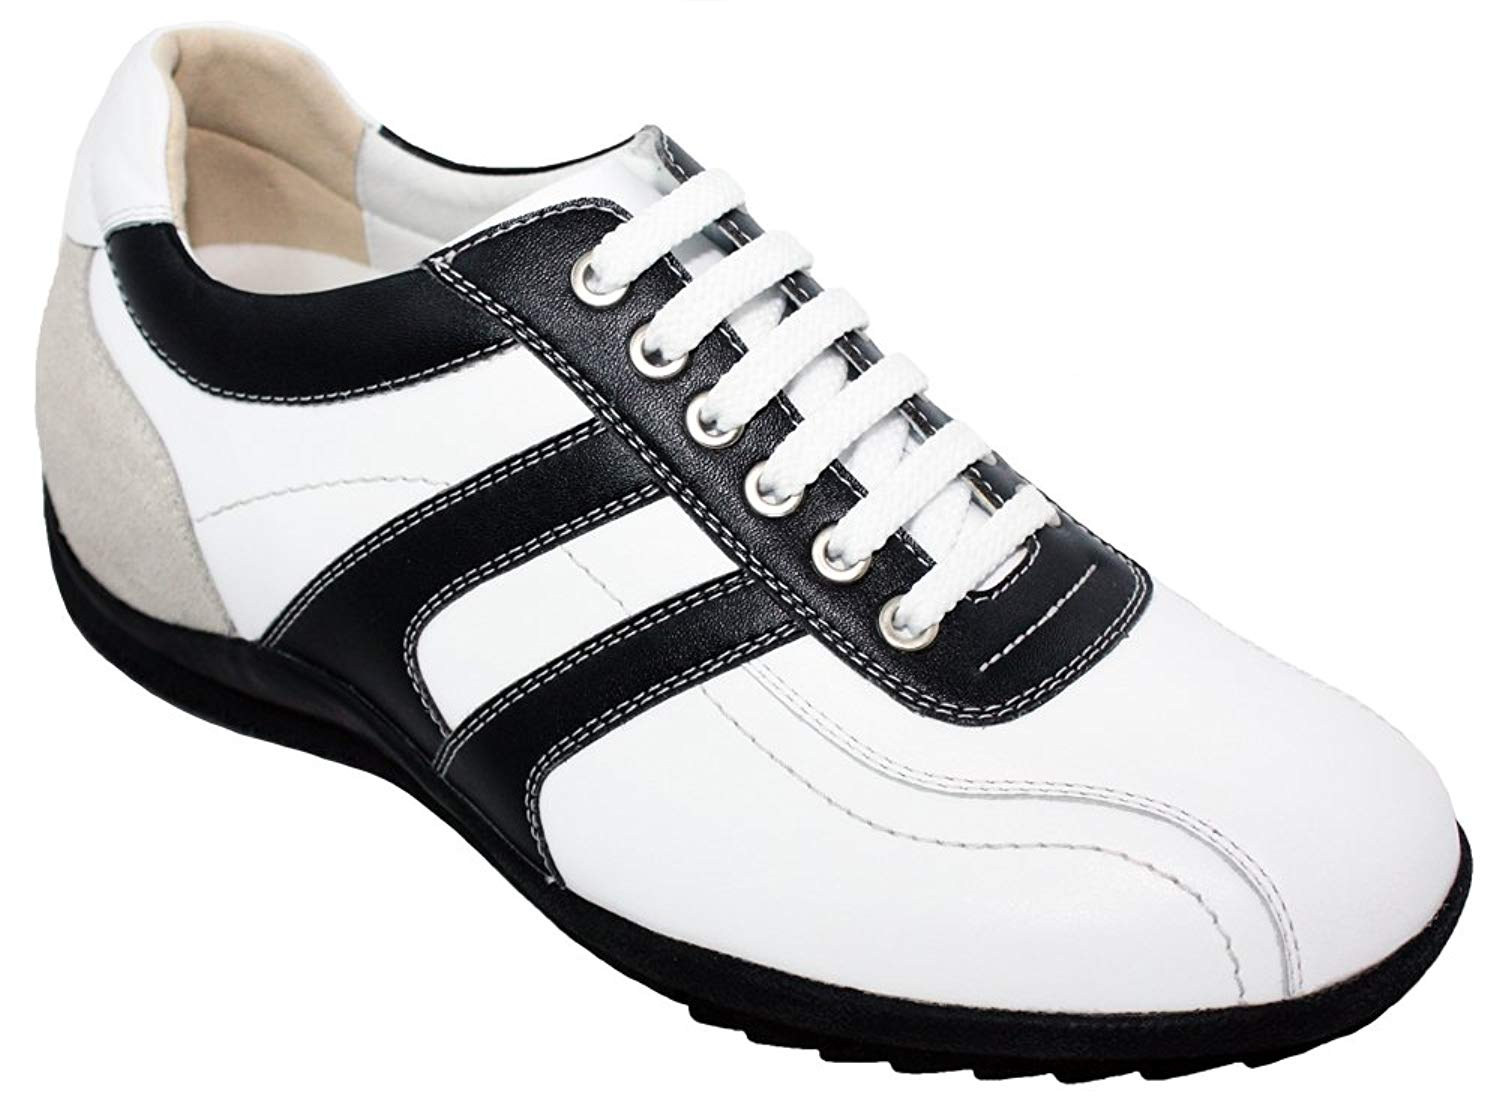 Toto TOTO-A66362-2.8 Inches Taller-Height Increasing Elevator Shoes (White Leather Lace-up Sneakers)